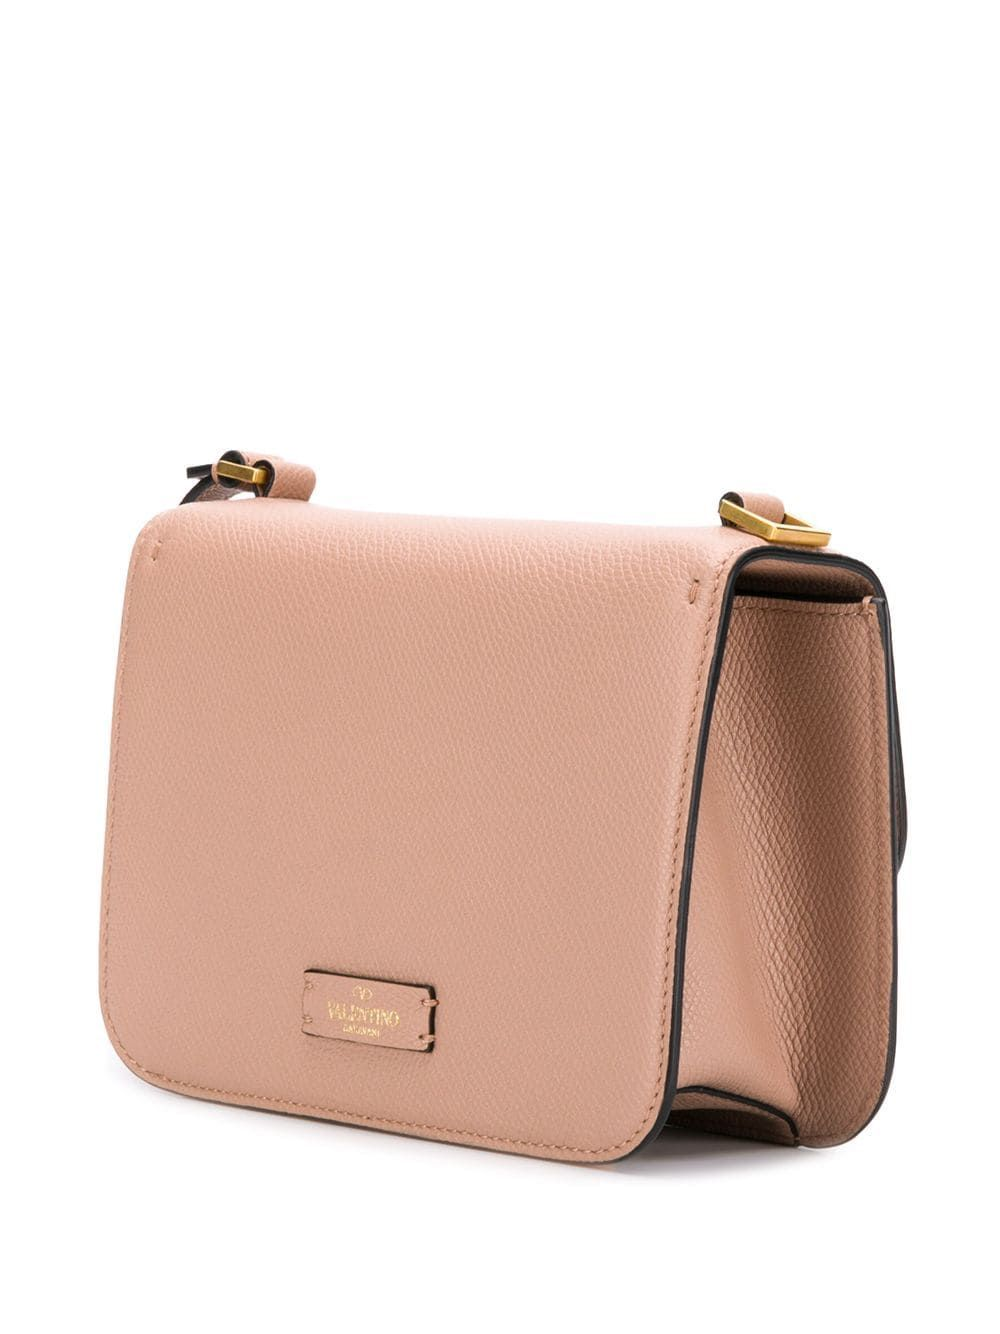 VALENTINO WOMEN'S TW2B0F01RQRGF9 PINK LEATHER SHOULDER BAG